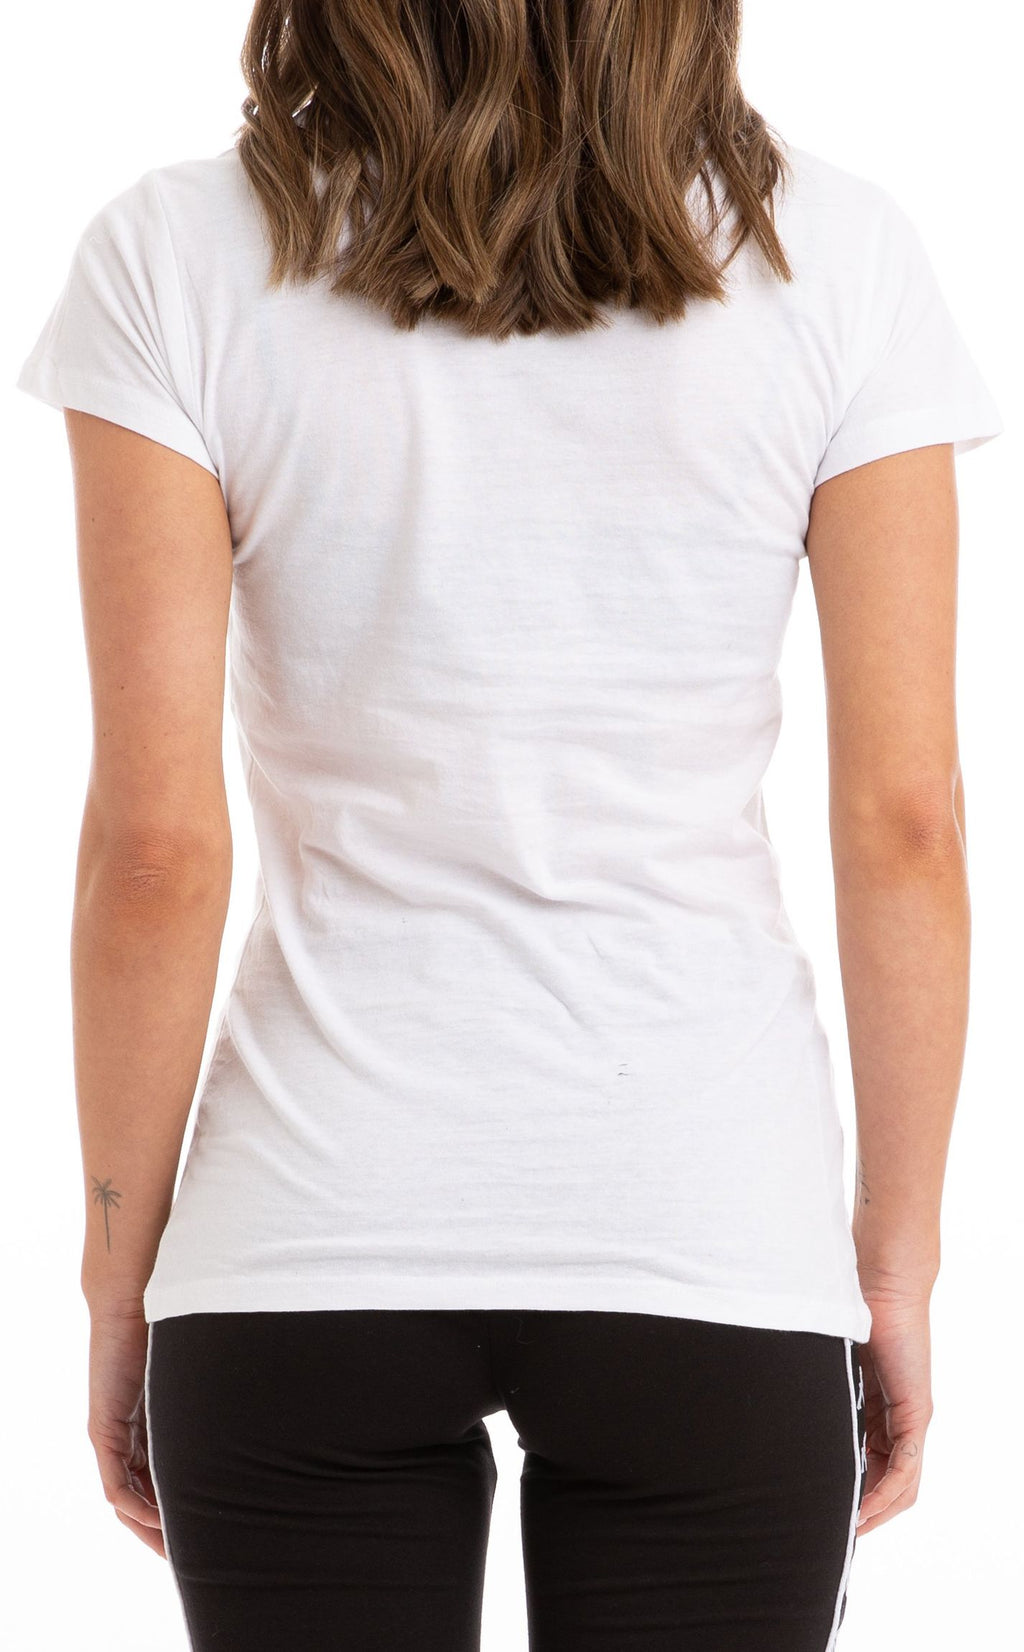 Kappa Women's Westessi T-Shirt White